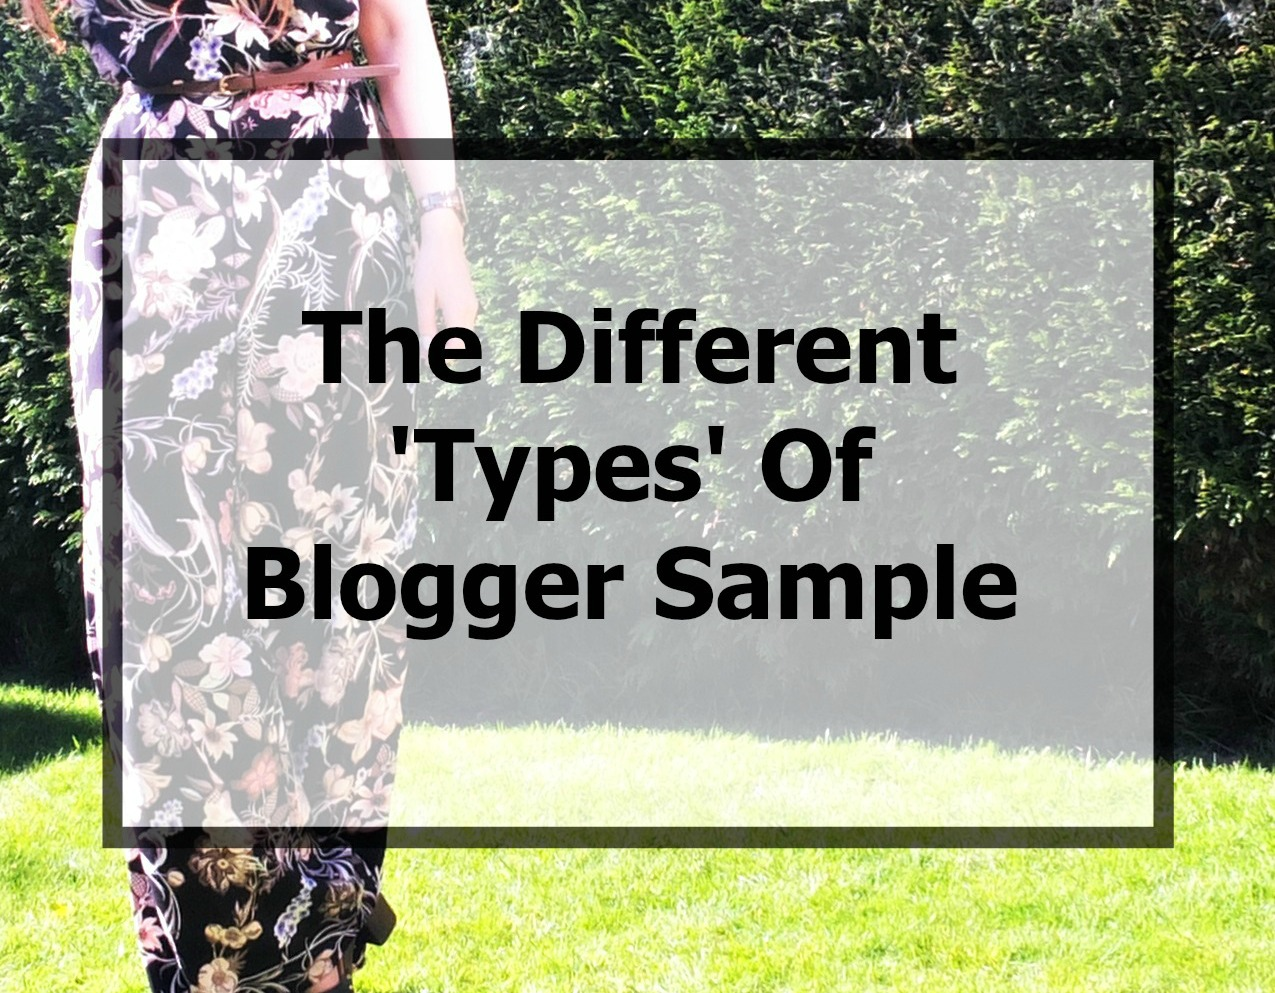 the different types of blogger sample explained